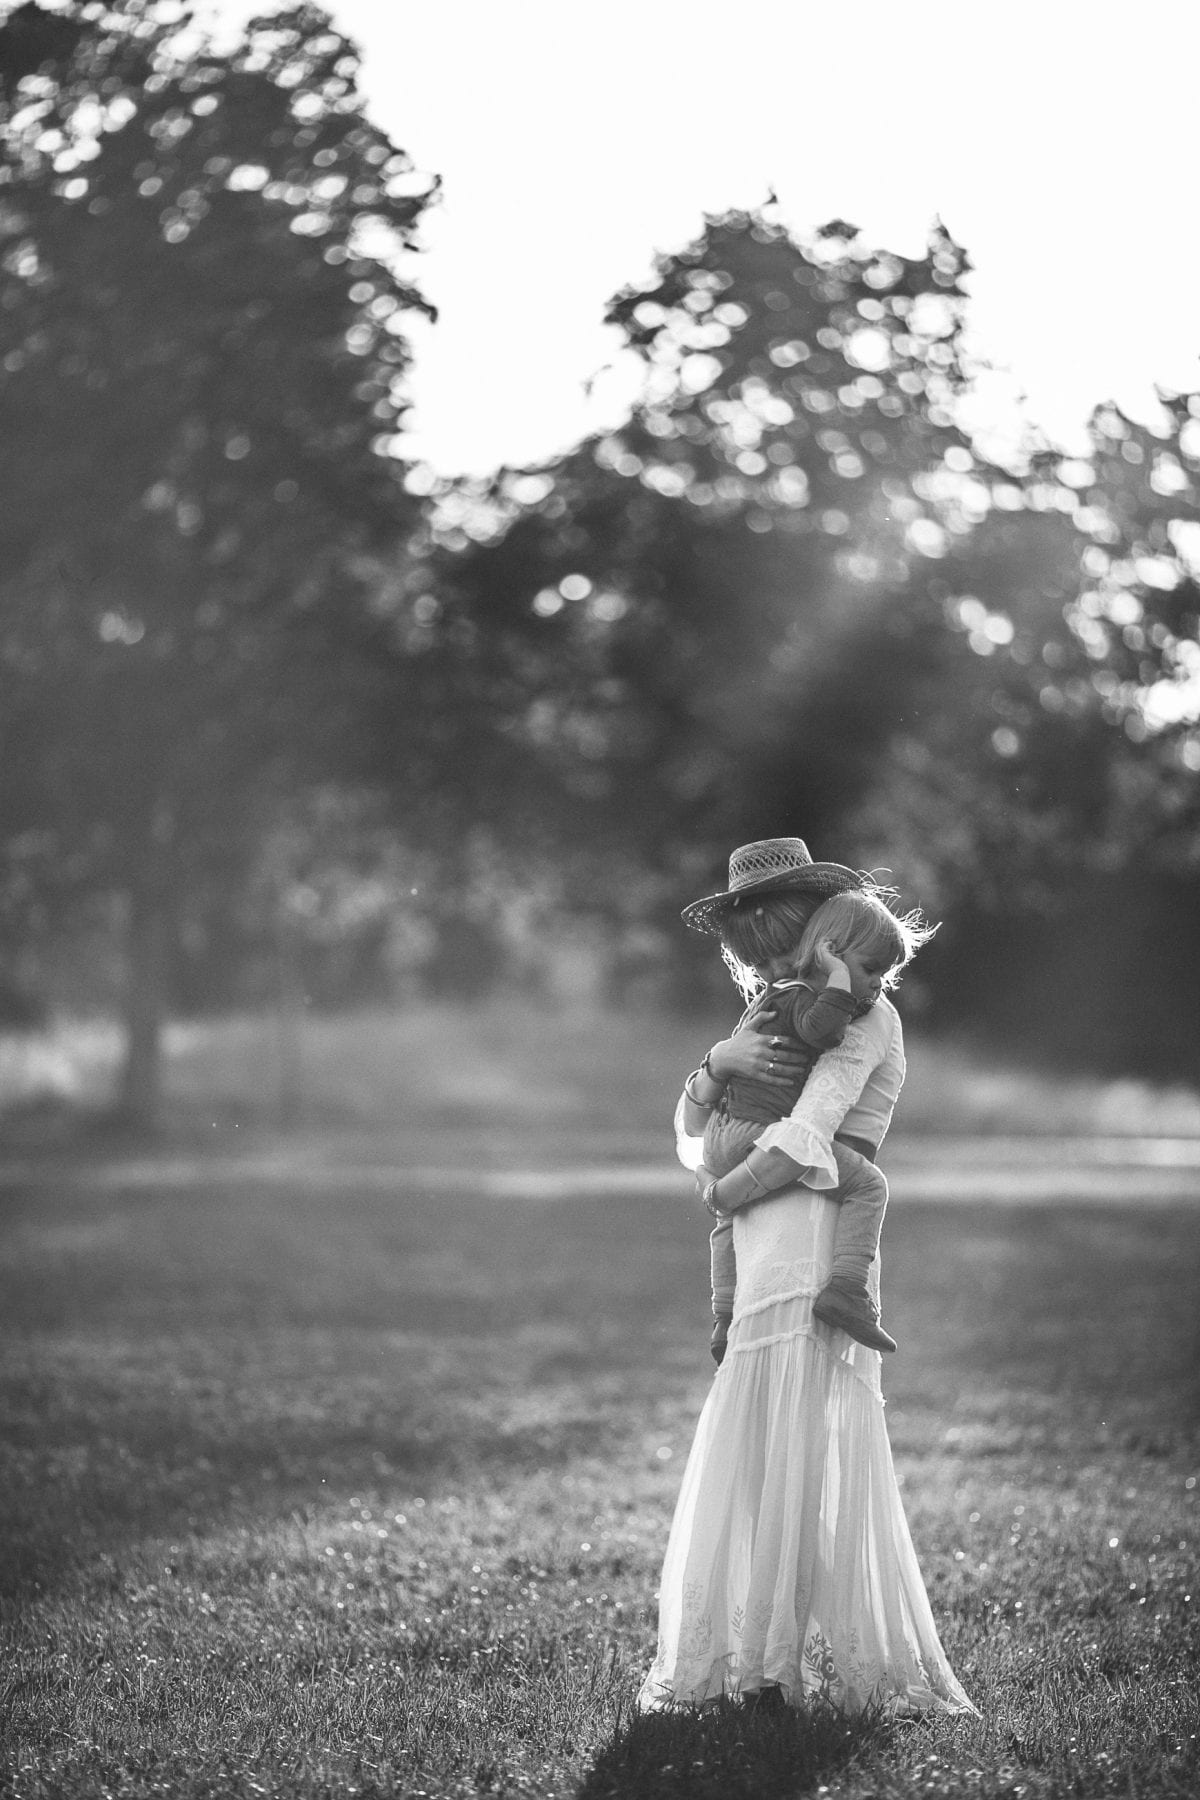 elin_bandmann_photography_wedding_photographer_sweden-37